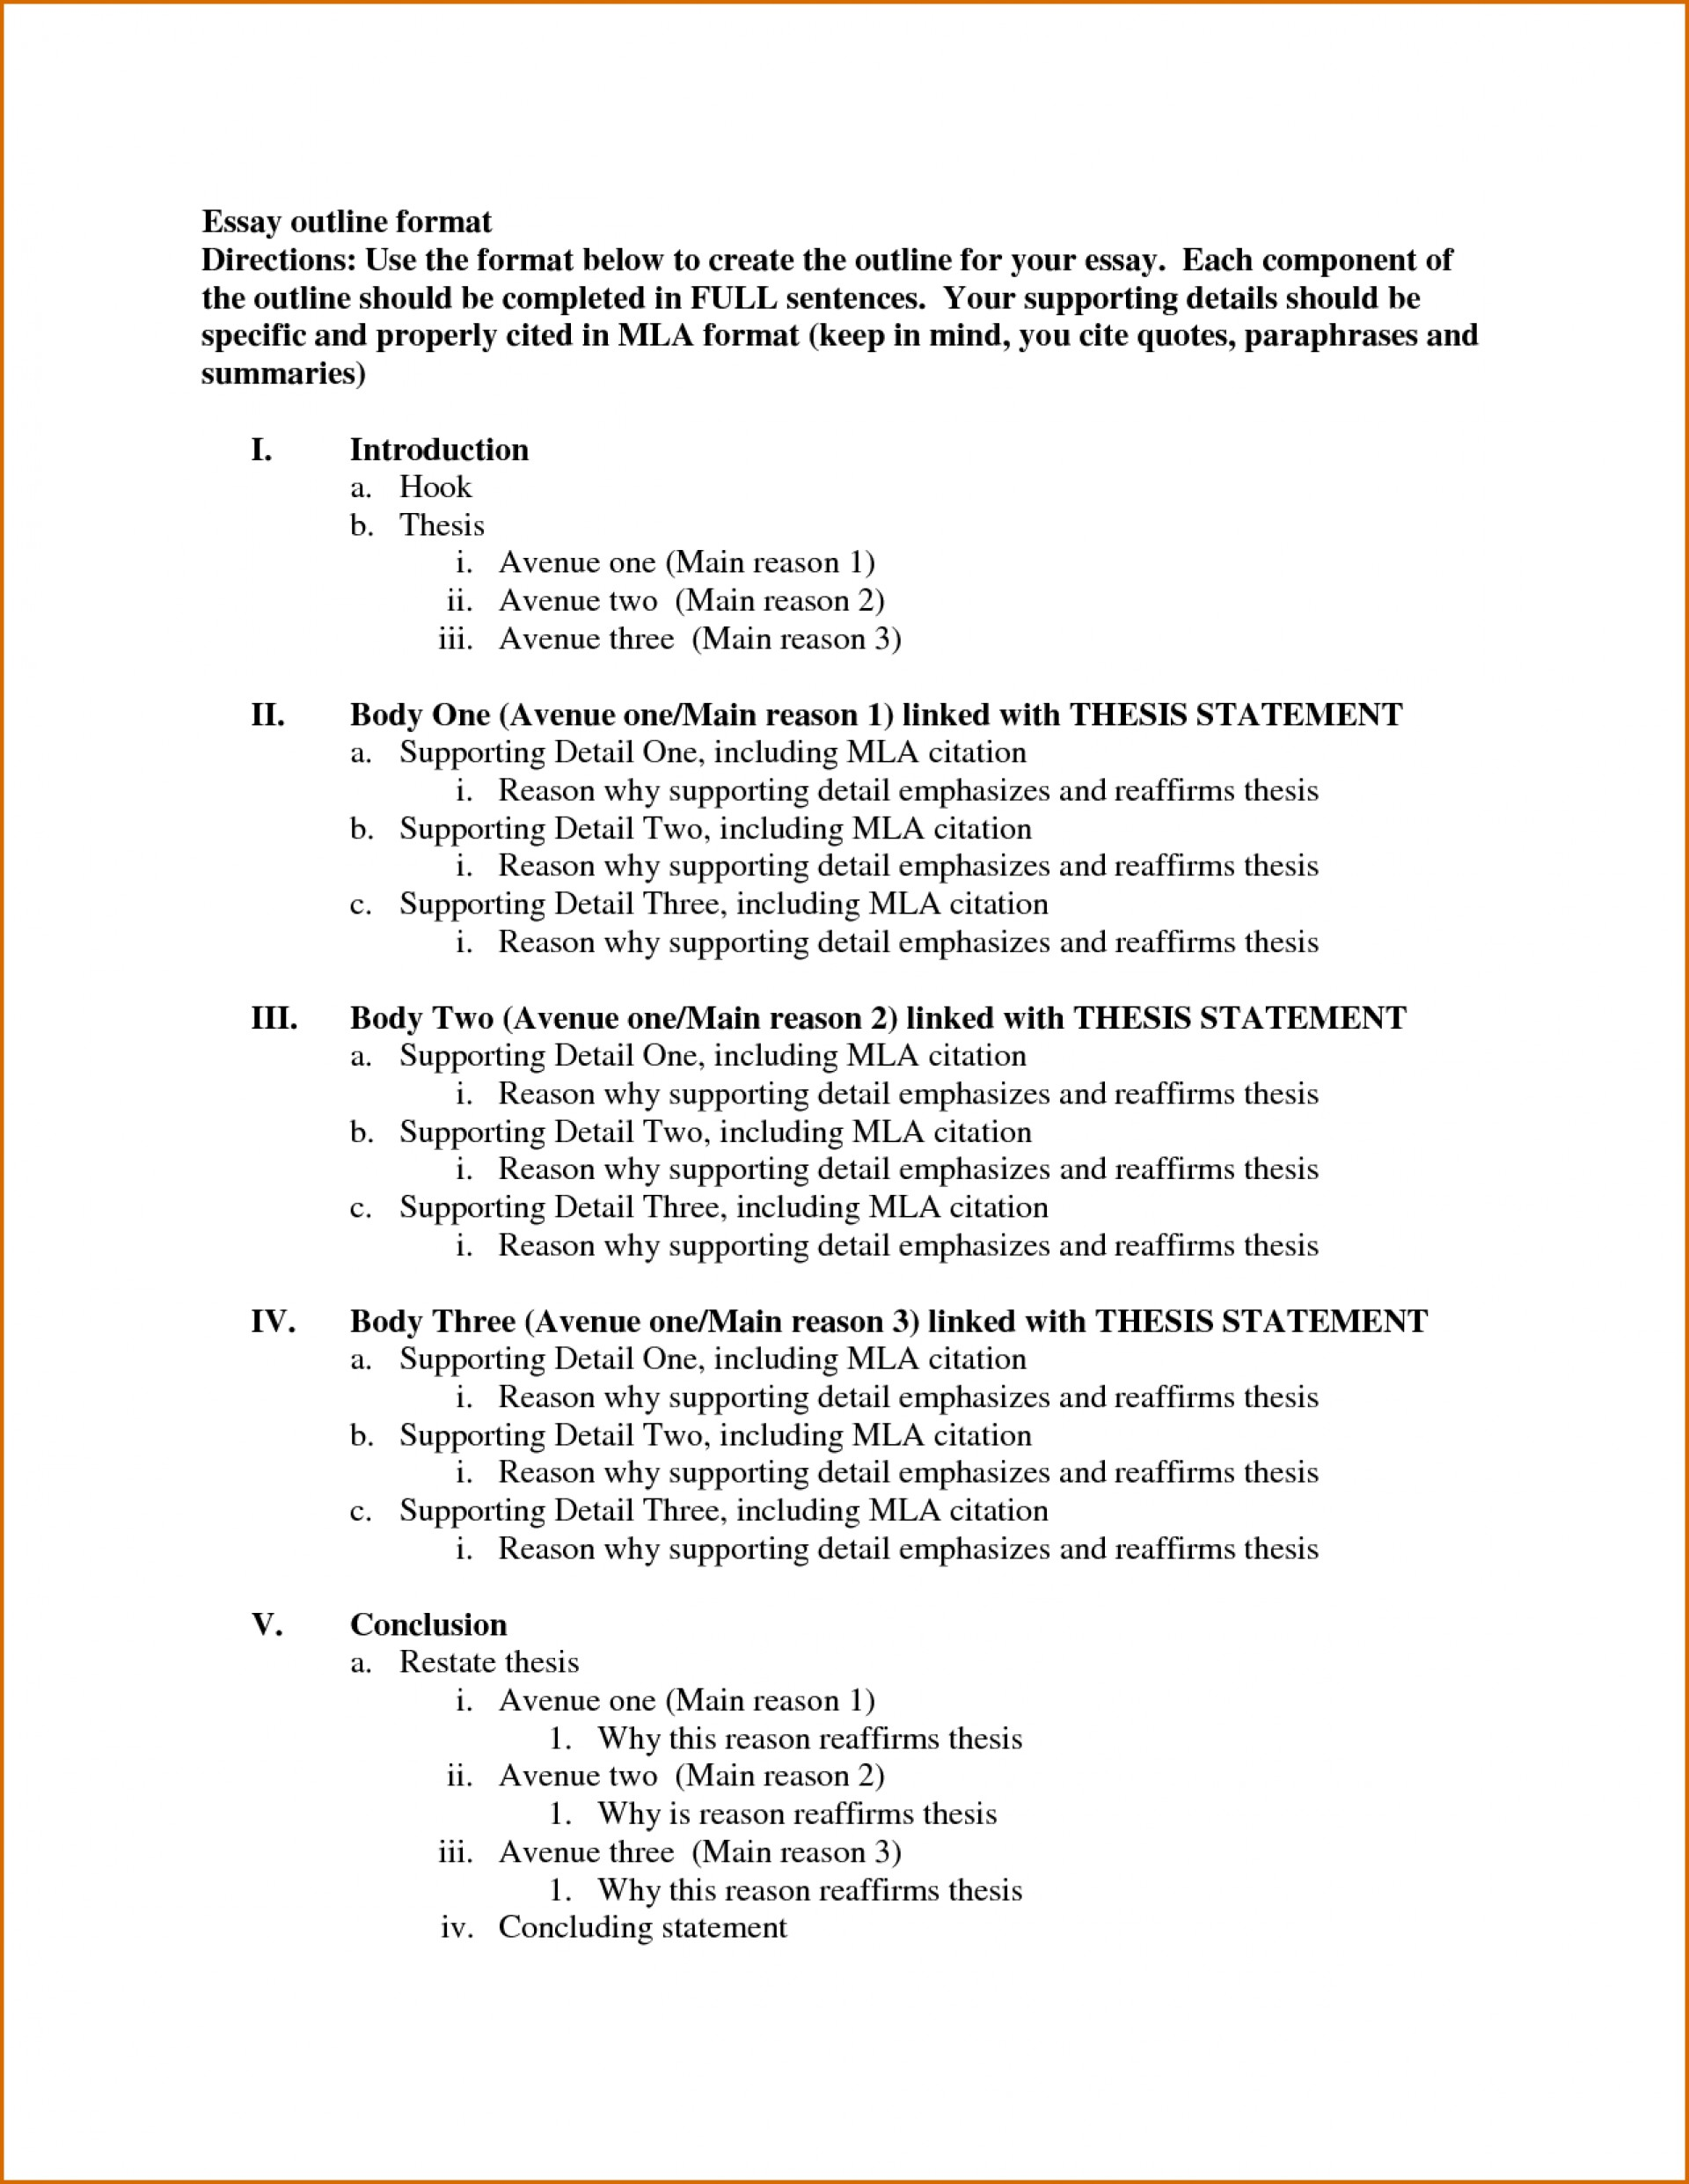 020 Essay Outline Template Fascinating About Immigration Tok Structure Definition 1920